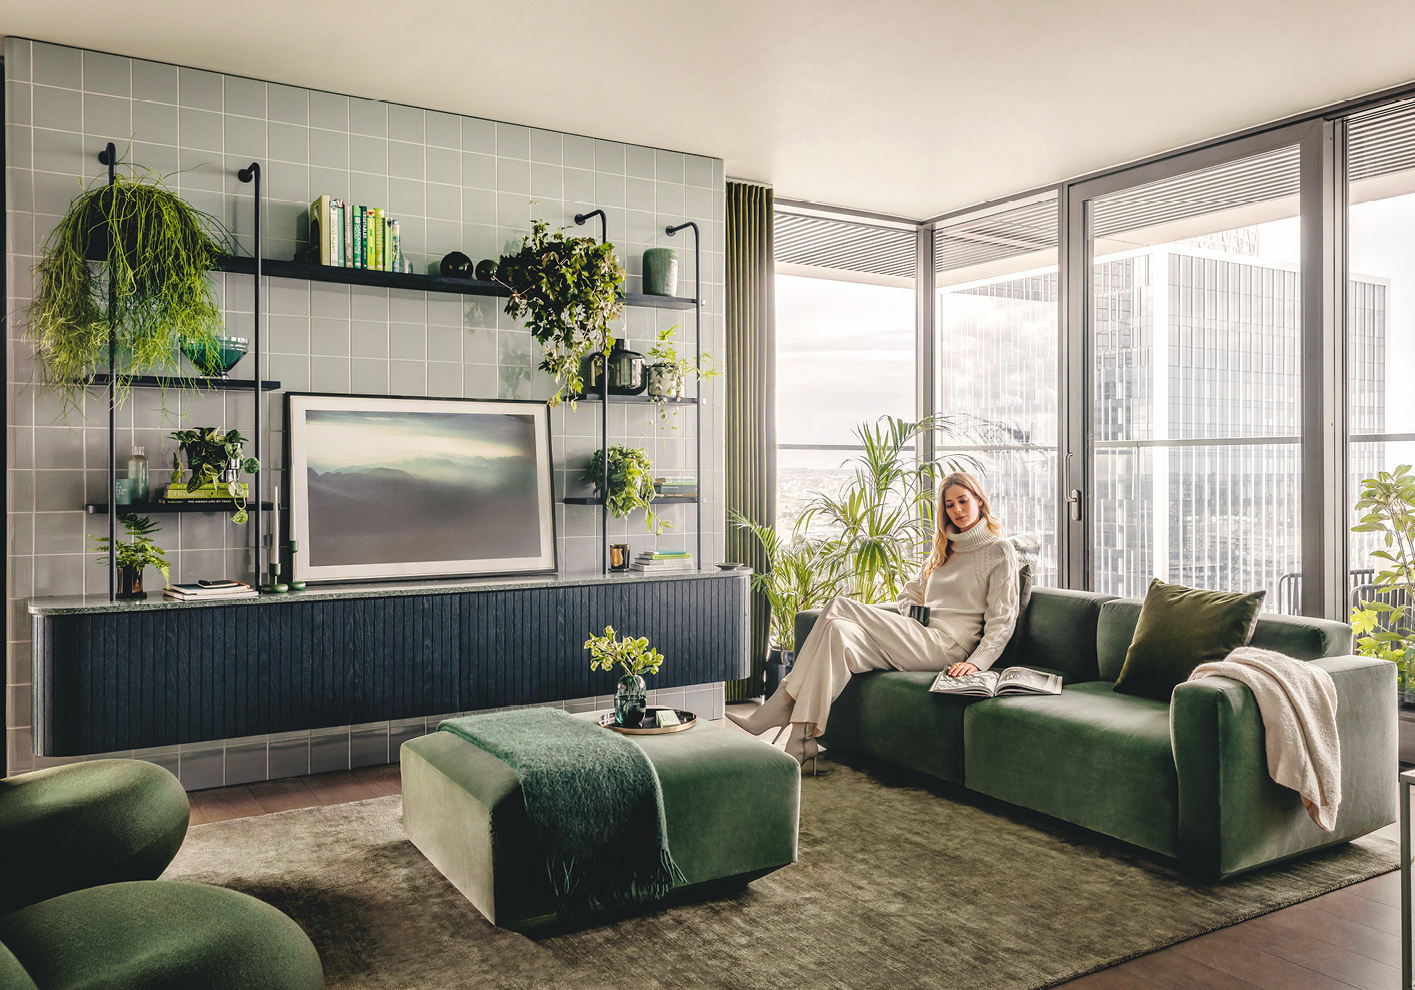 The design of Wardian is inspired by biophilia